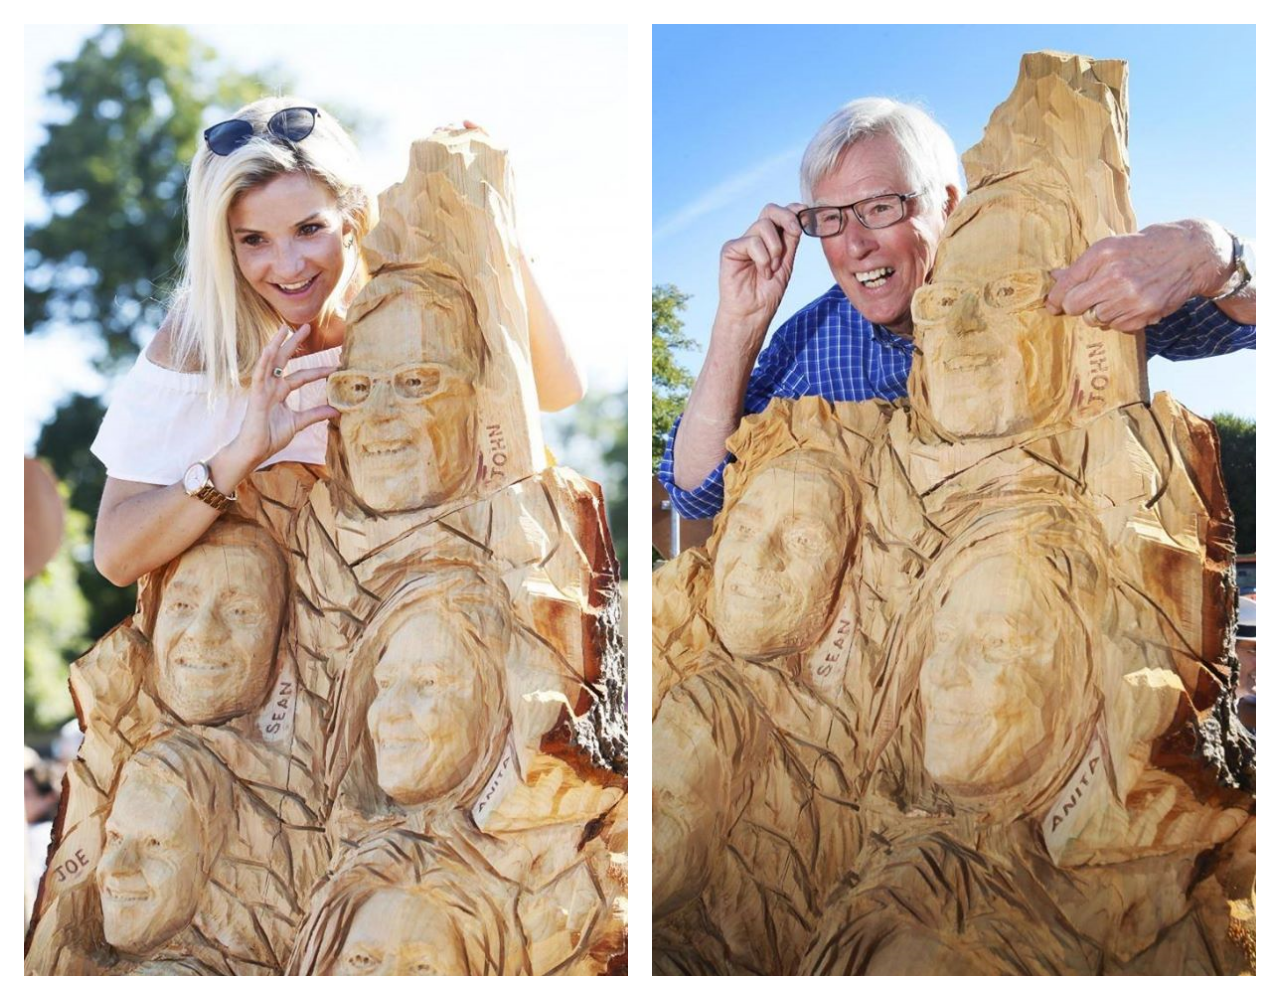 tv themed sculptures: countryfile presenters stand with their likeness created in wood by simon o'rourke